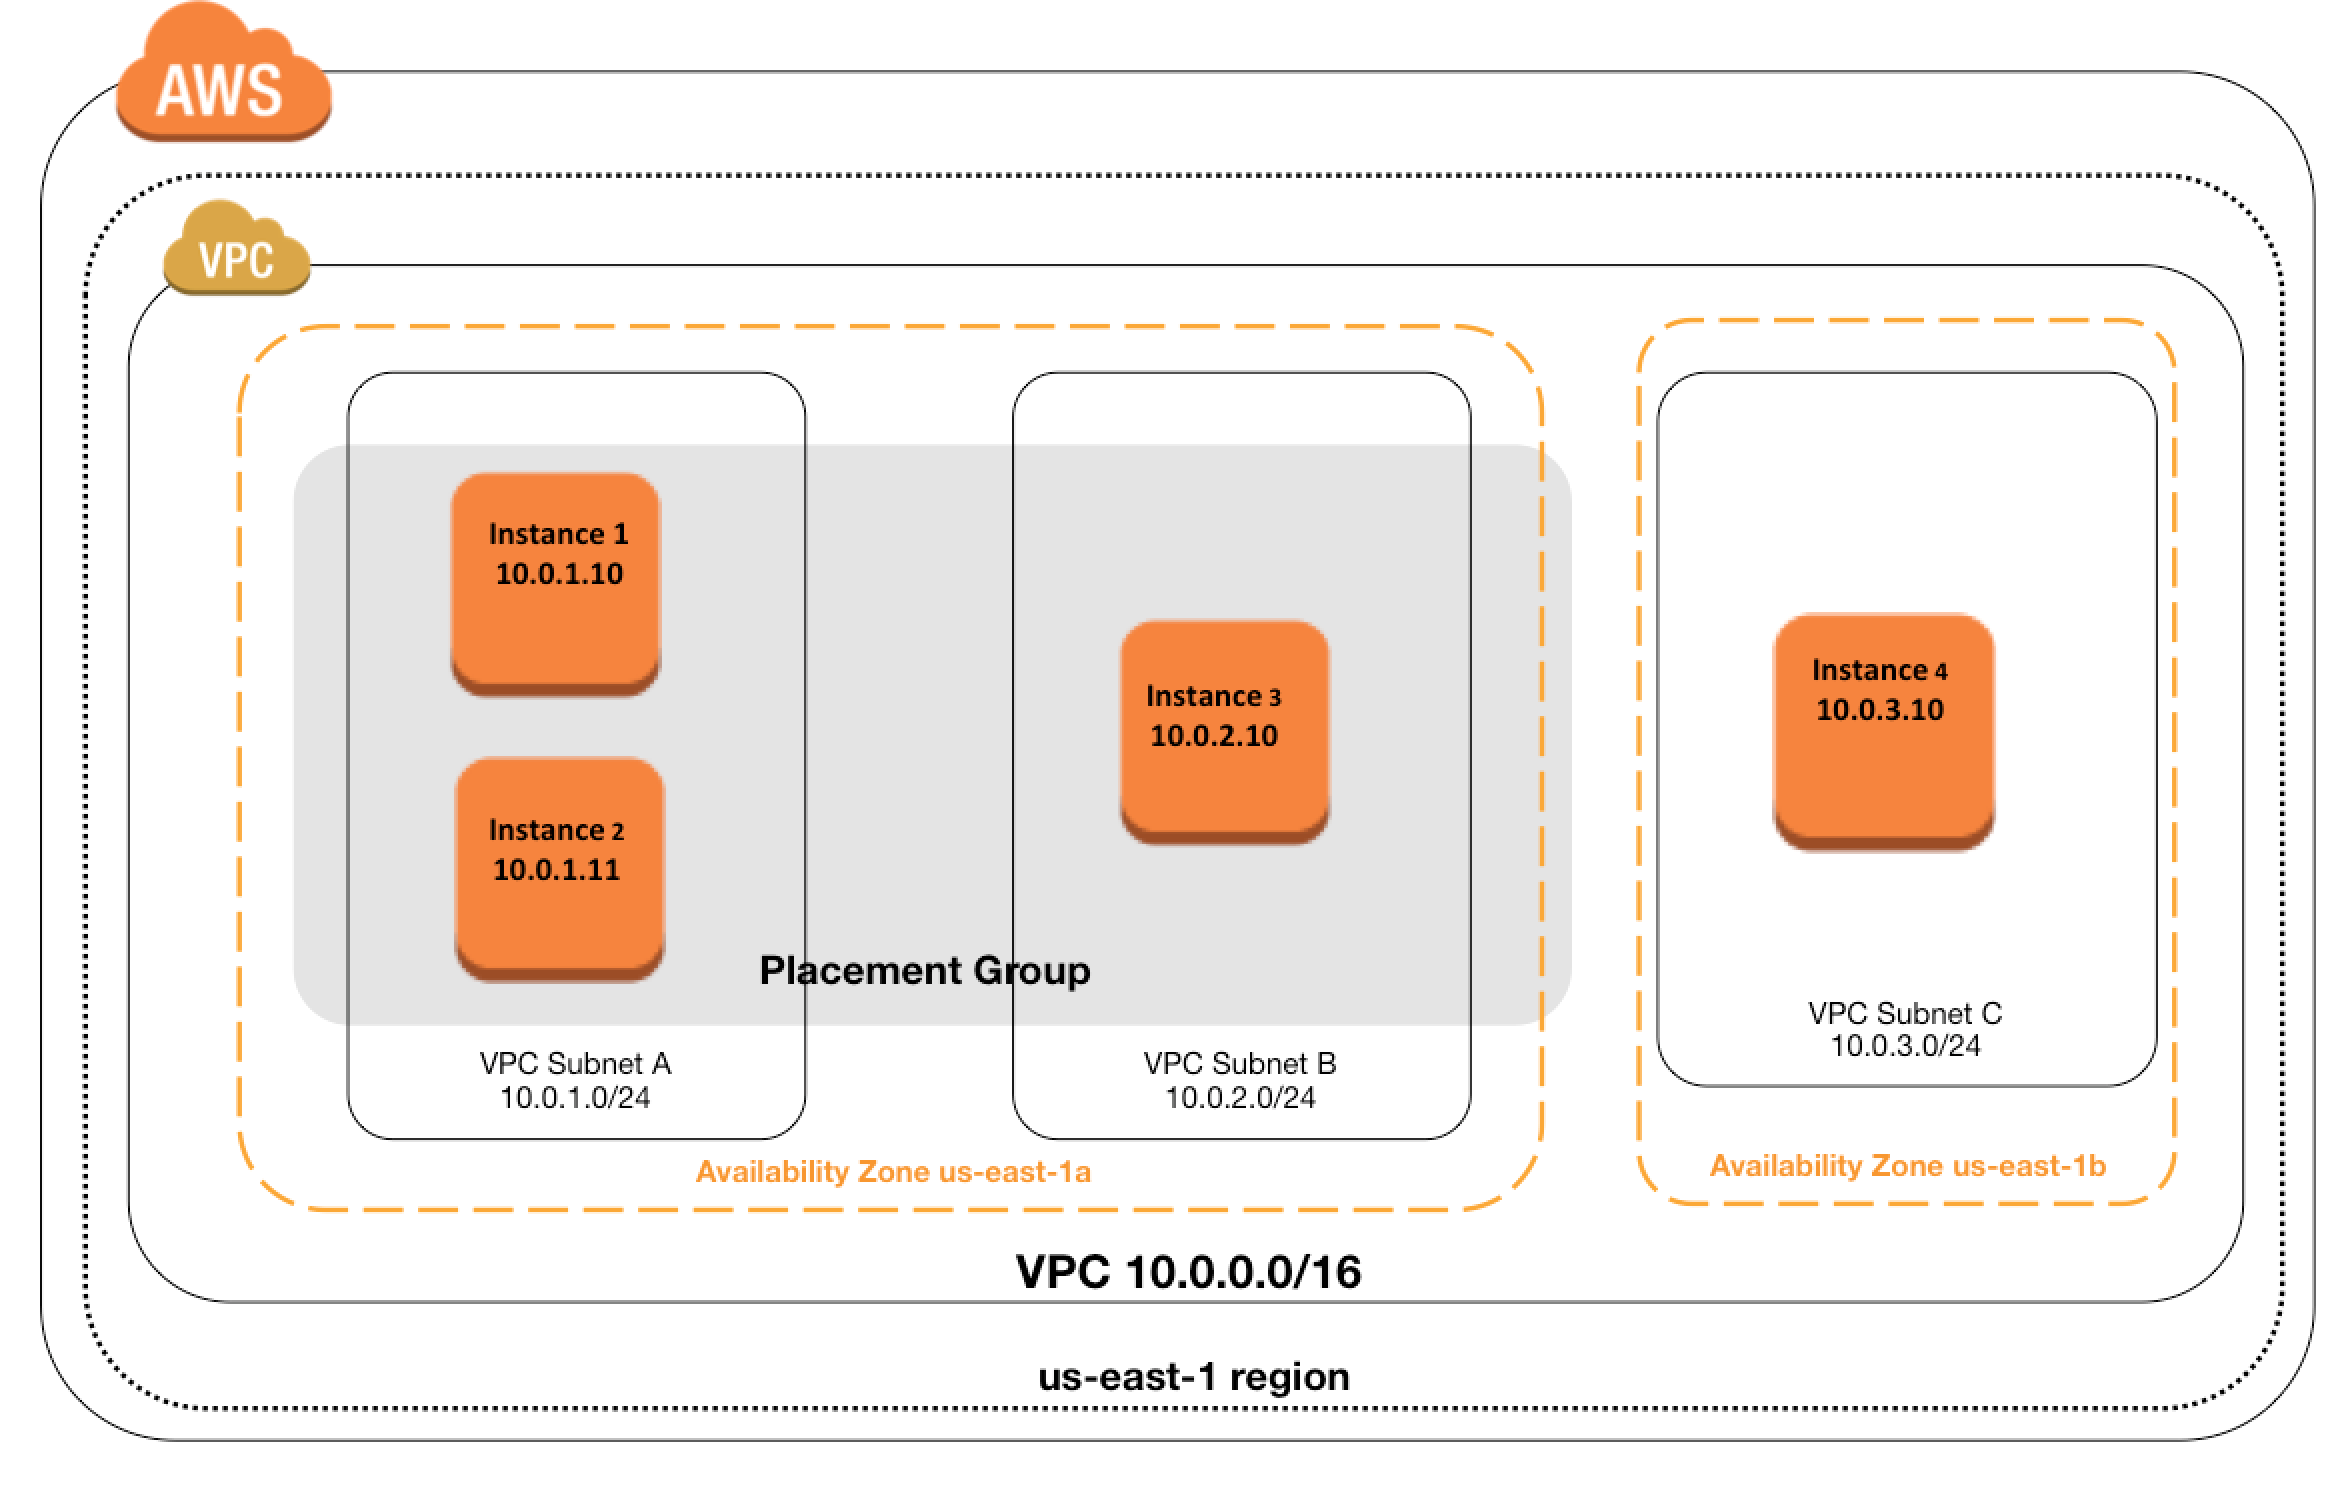 AWS EC2 Placement Group